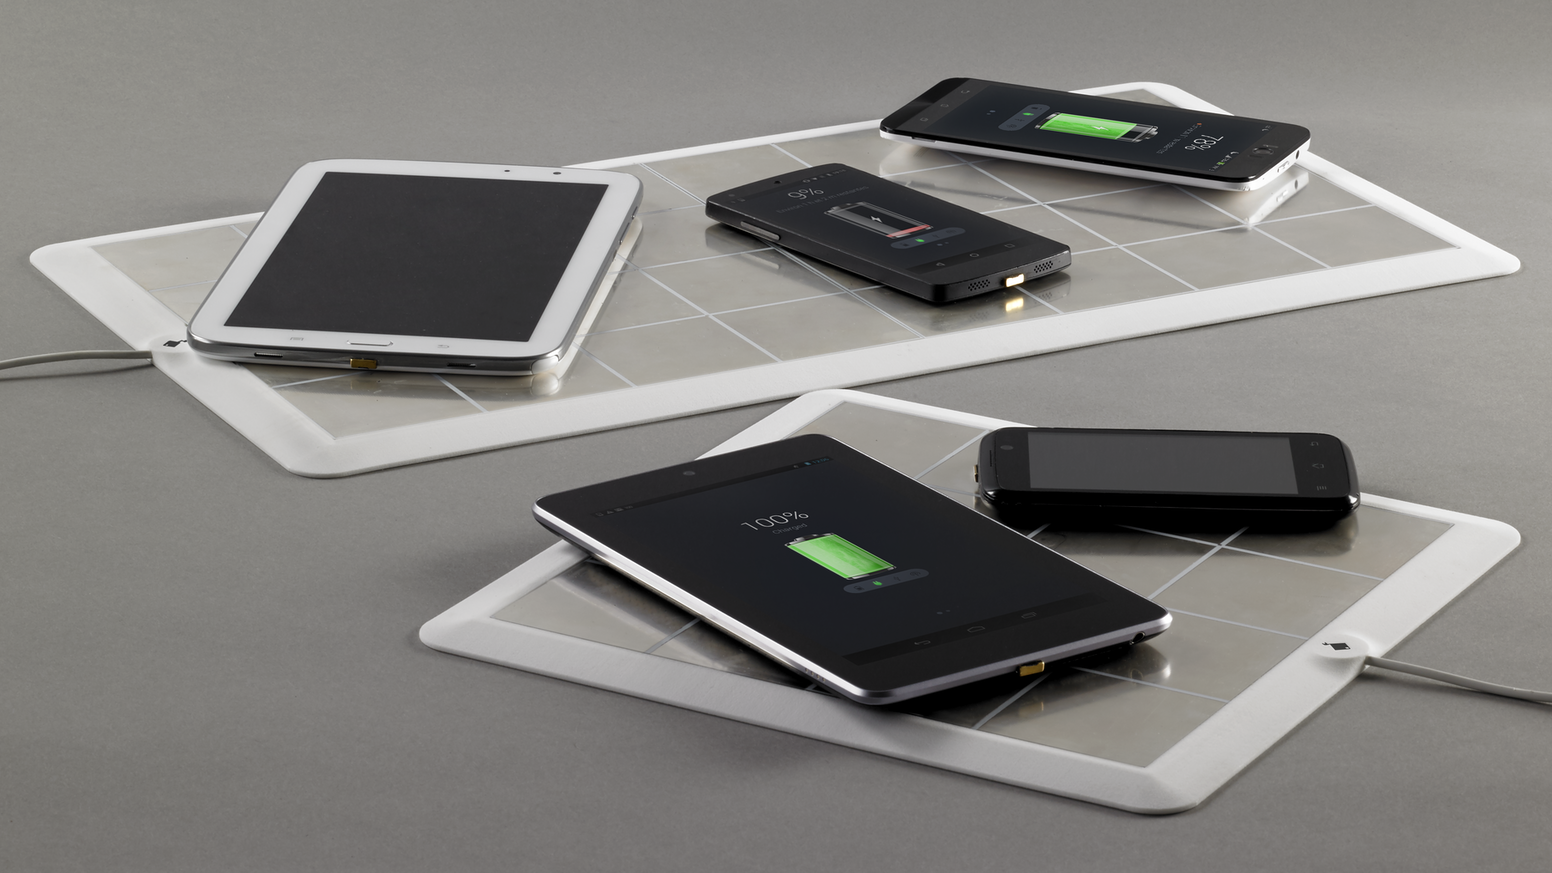 Energysquare is a new generation of wireless chargers - charge all your devices on an ultra-thin pad with no induction!